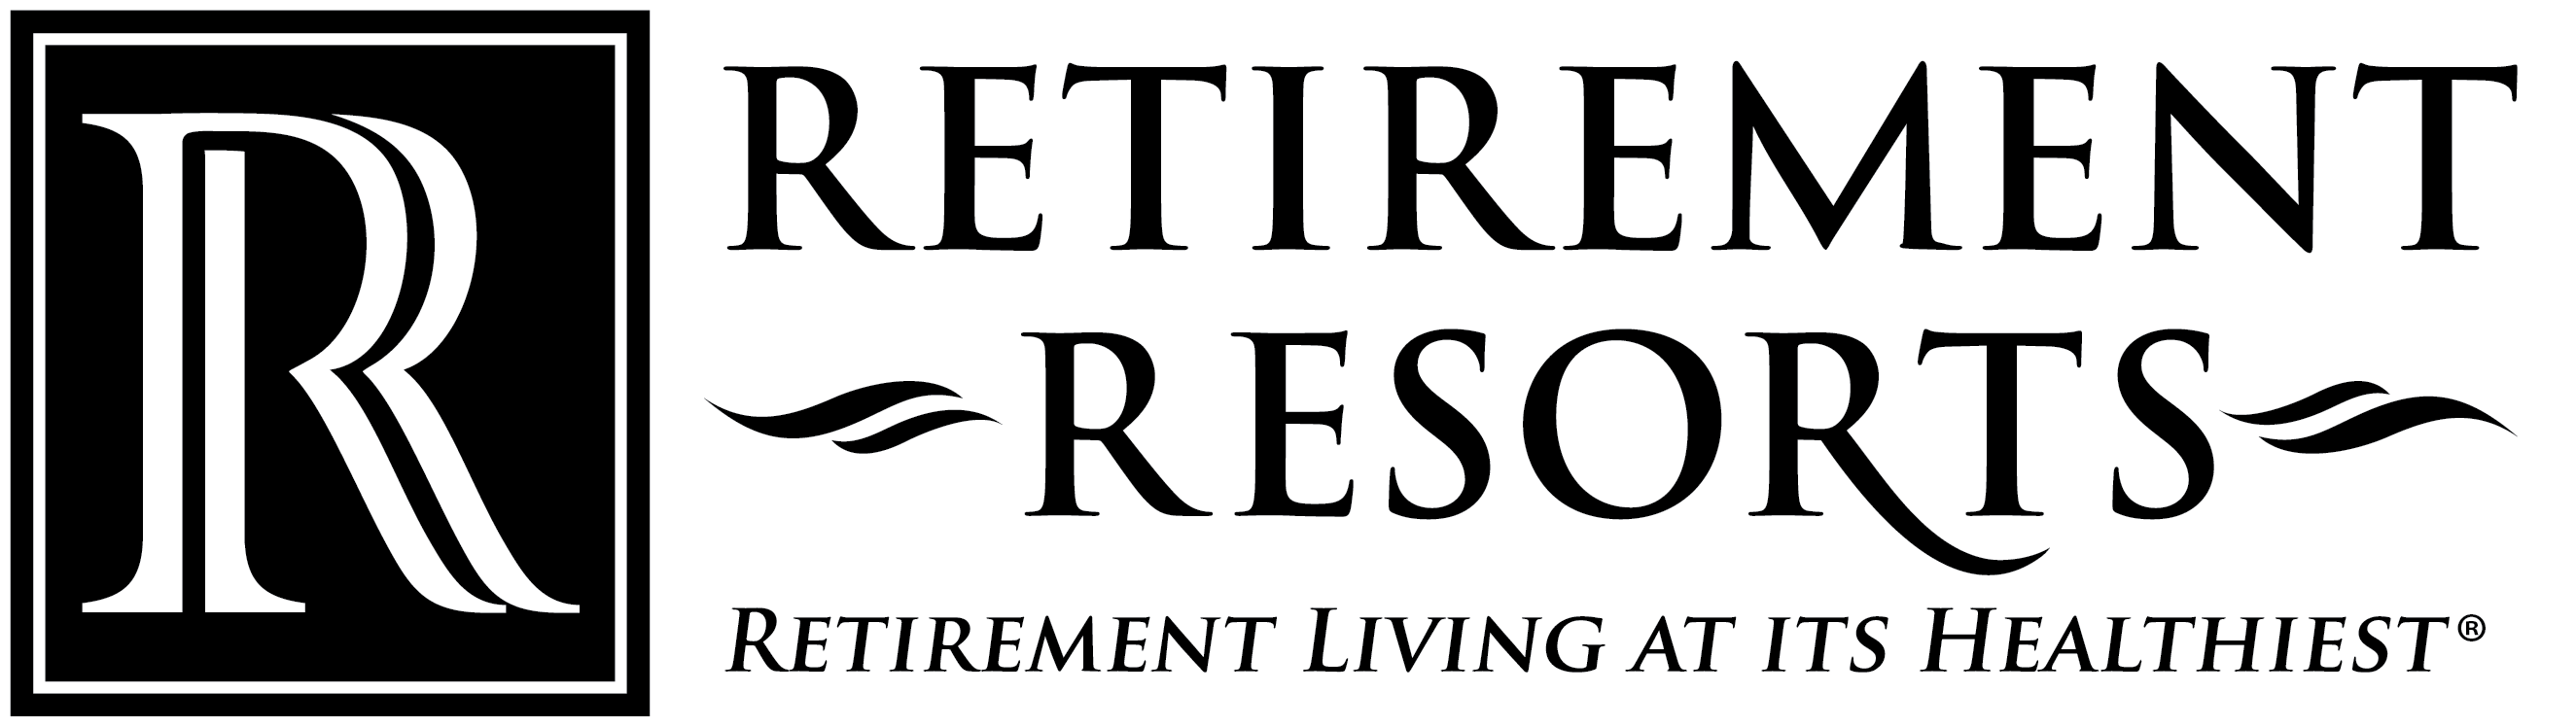 Retirement Resorts